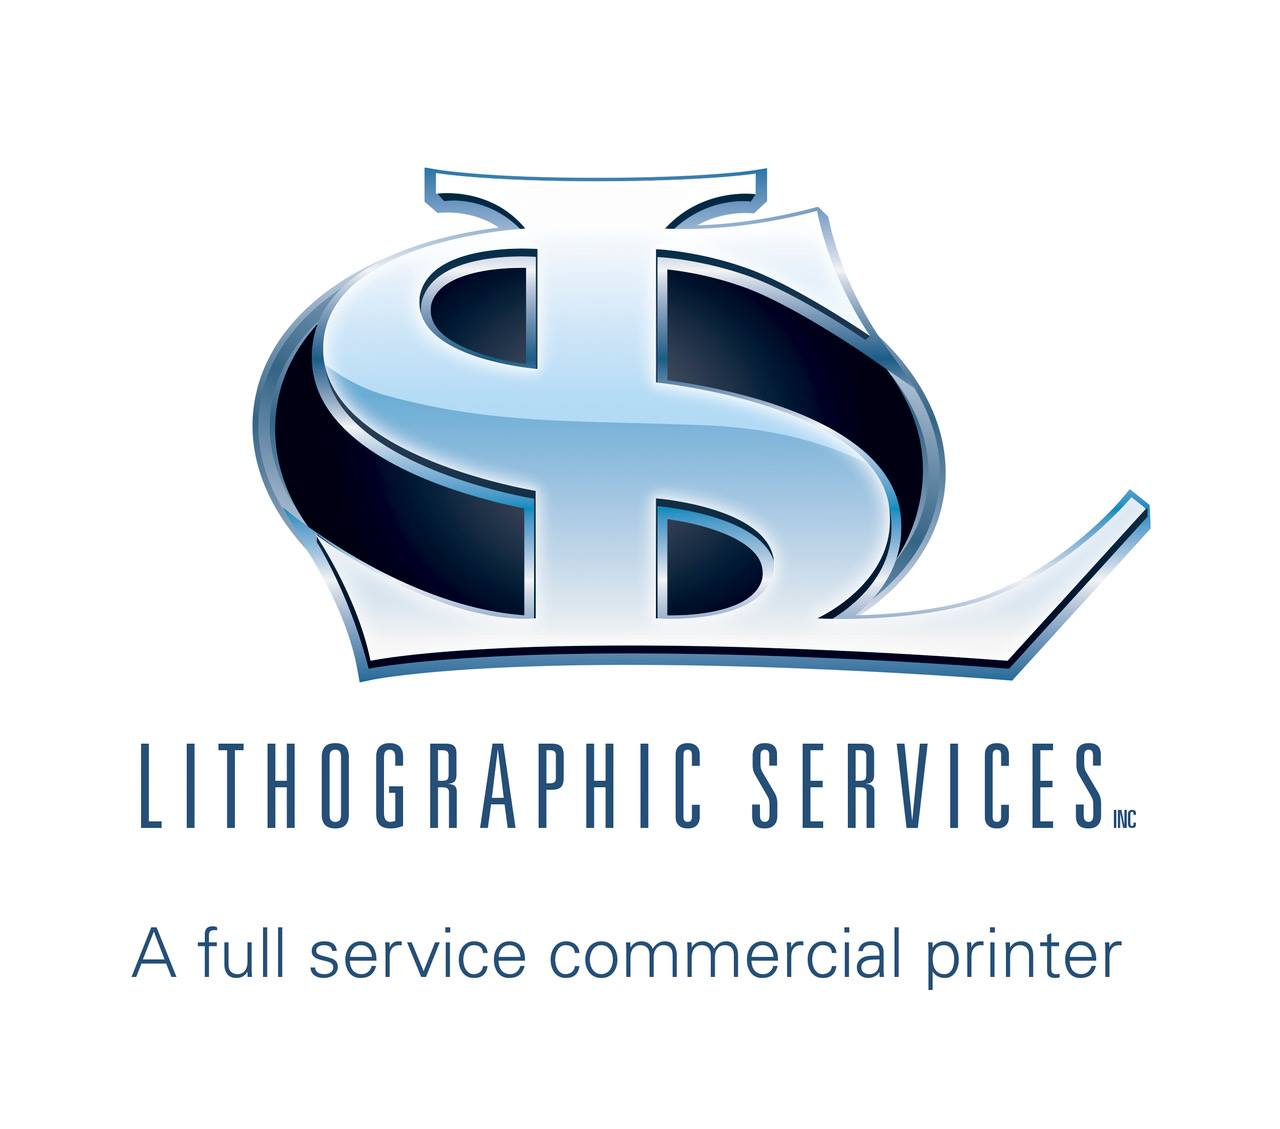 Lithographic Services